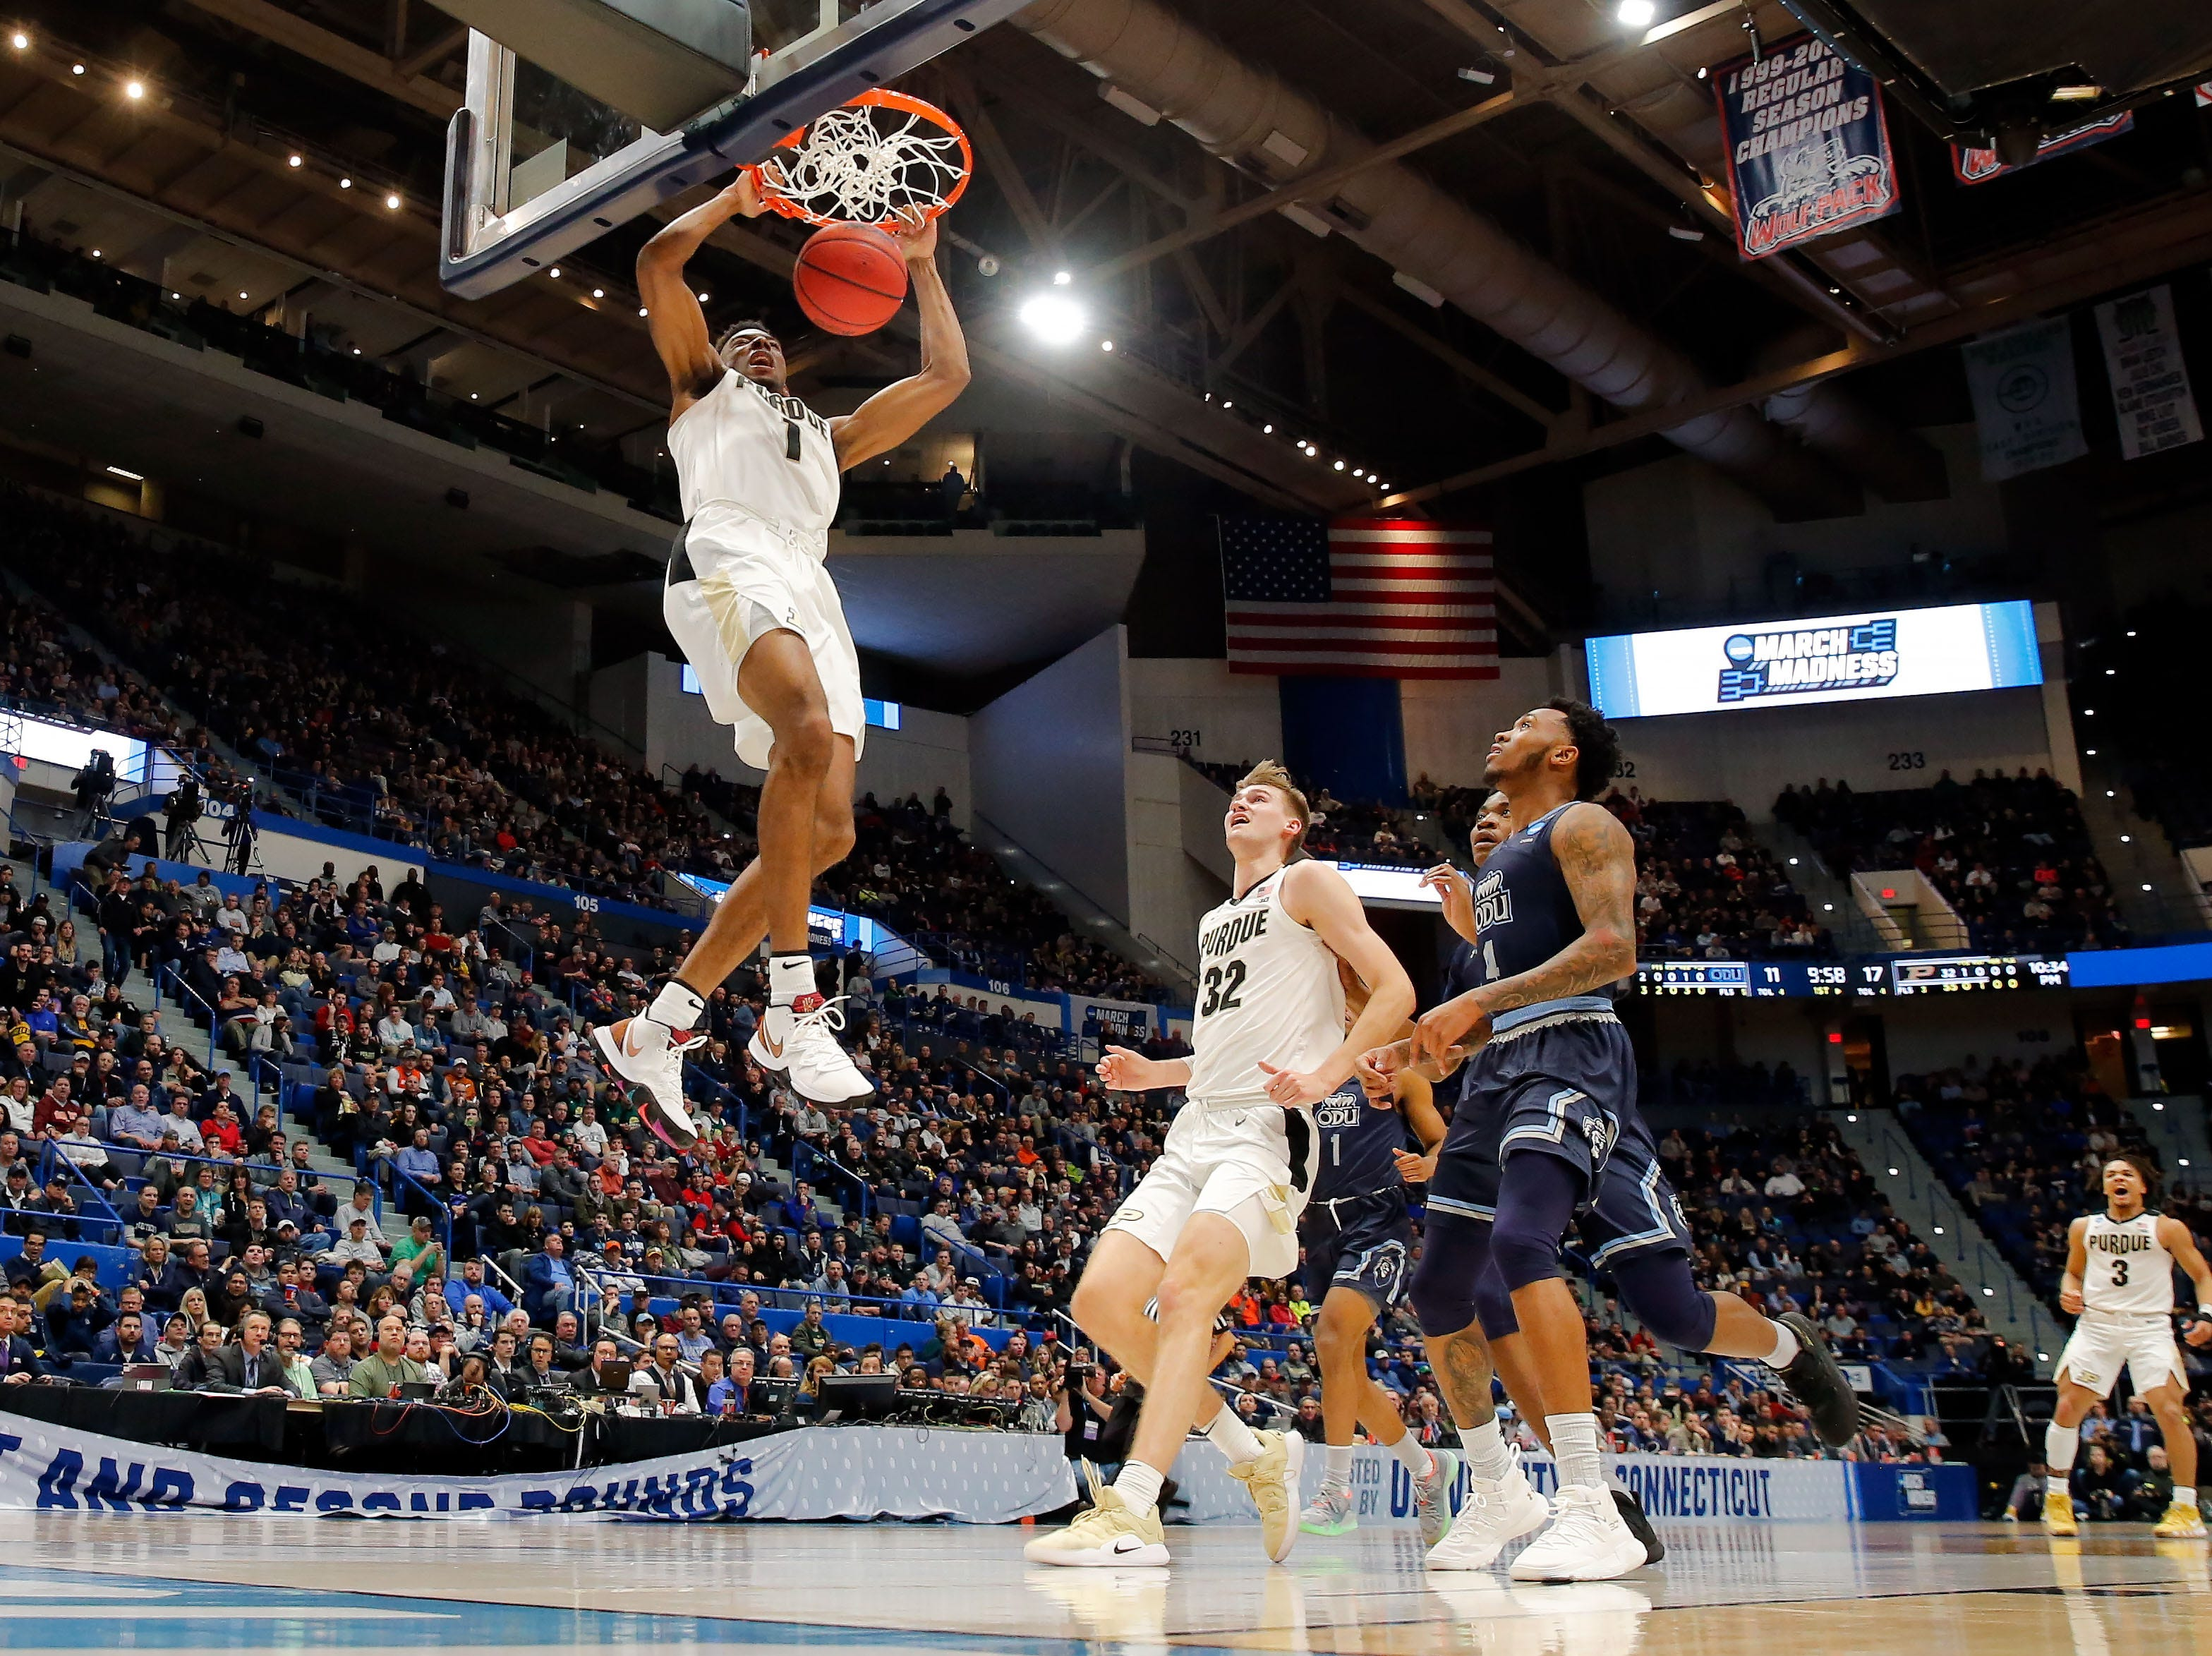 Mar 21, 2019; Hartford, CT, USA; Purdue Boilermakers forward Aaron Wheeler (1) dunks and scores against the Old Dominion Monarchs during the first half of a game in the first round of the 2019 NCAA Tournament at XL Center. Mandatory Credit: David Butler II-USA TODAY Sports